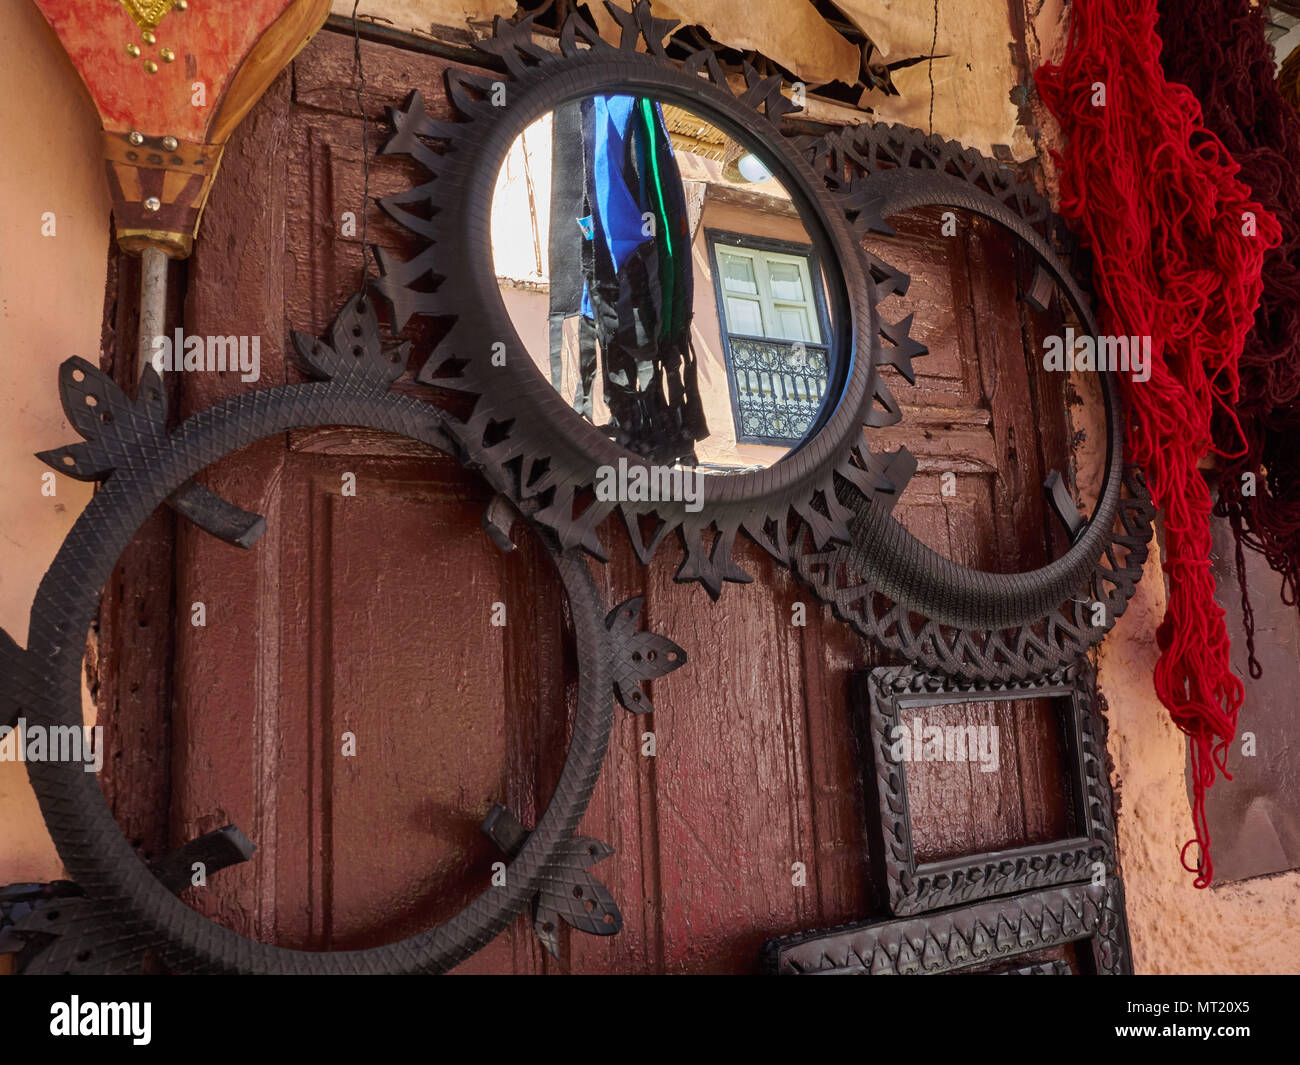 Round Mirror In A Metal Frame On The Burgundy Wall Next To Two Empty Round Metal Frames Stock Photo Alamy